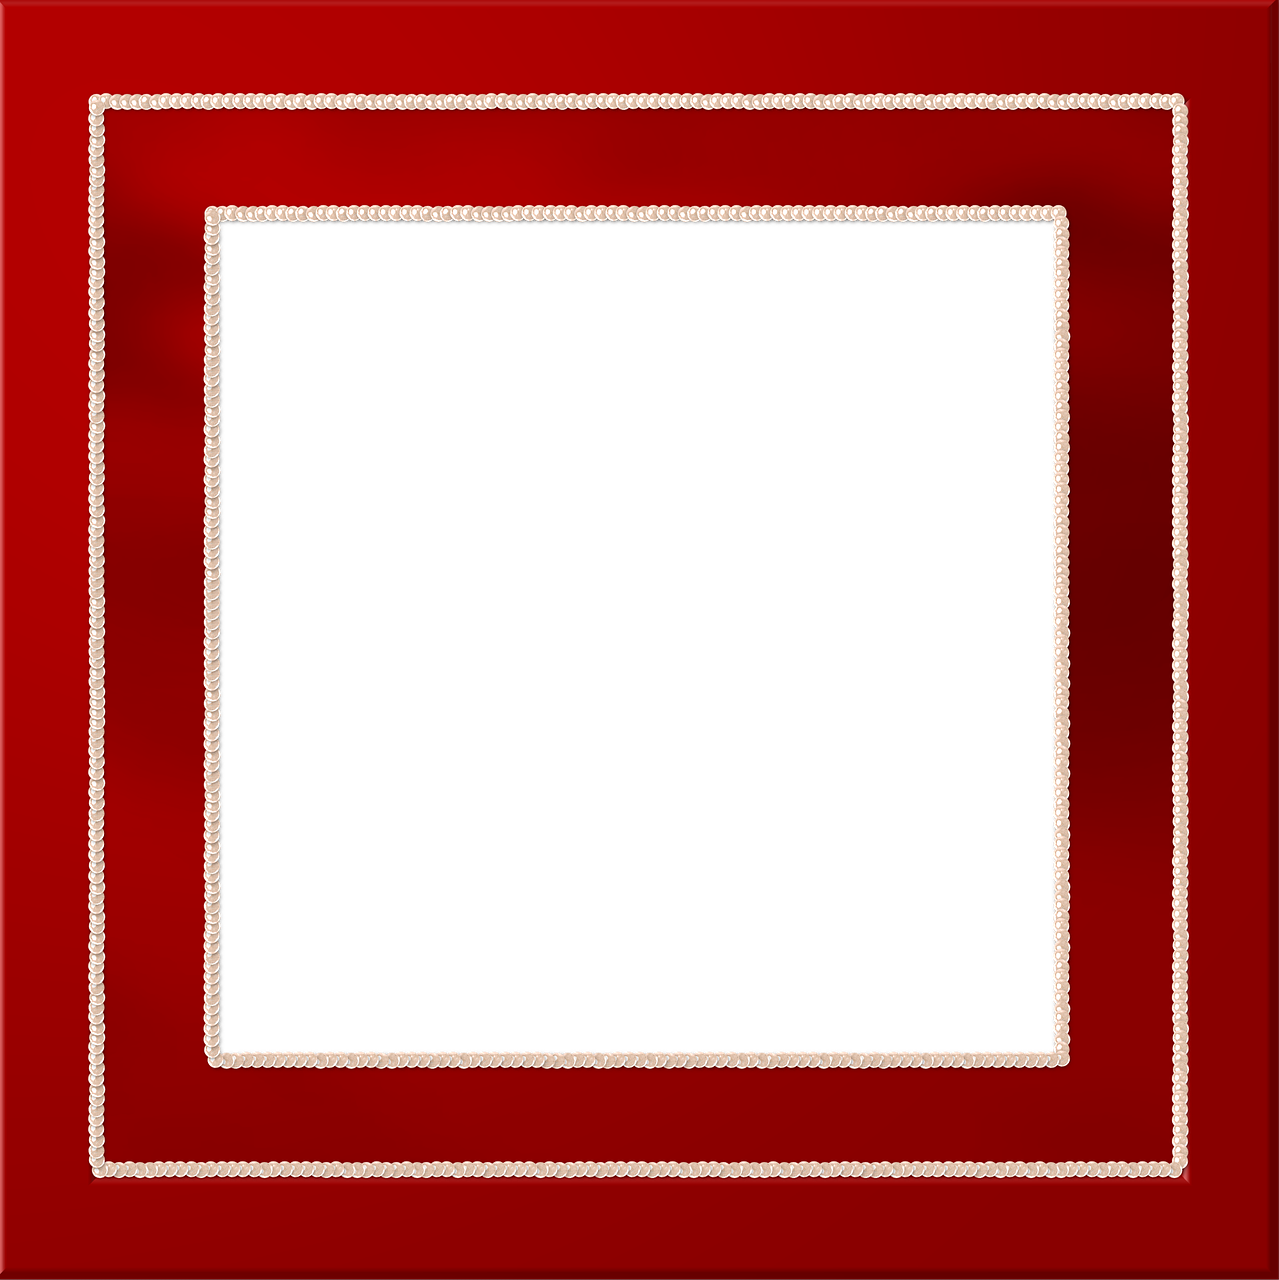 Vacation Red Frame Border Bevel Design Texture Vale Vacation Red Frame Border Bevel Design Tex Scrapbook Materials Frame Beautiful Vacation Spots